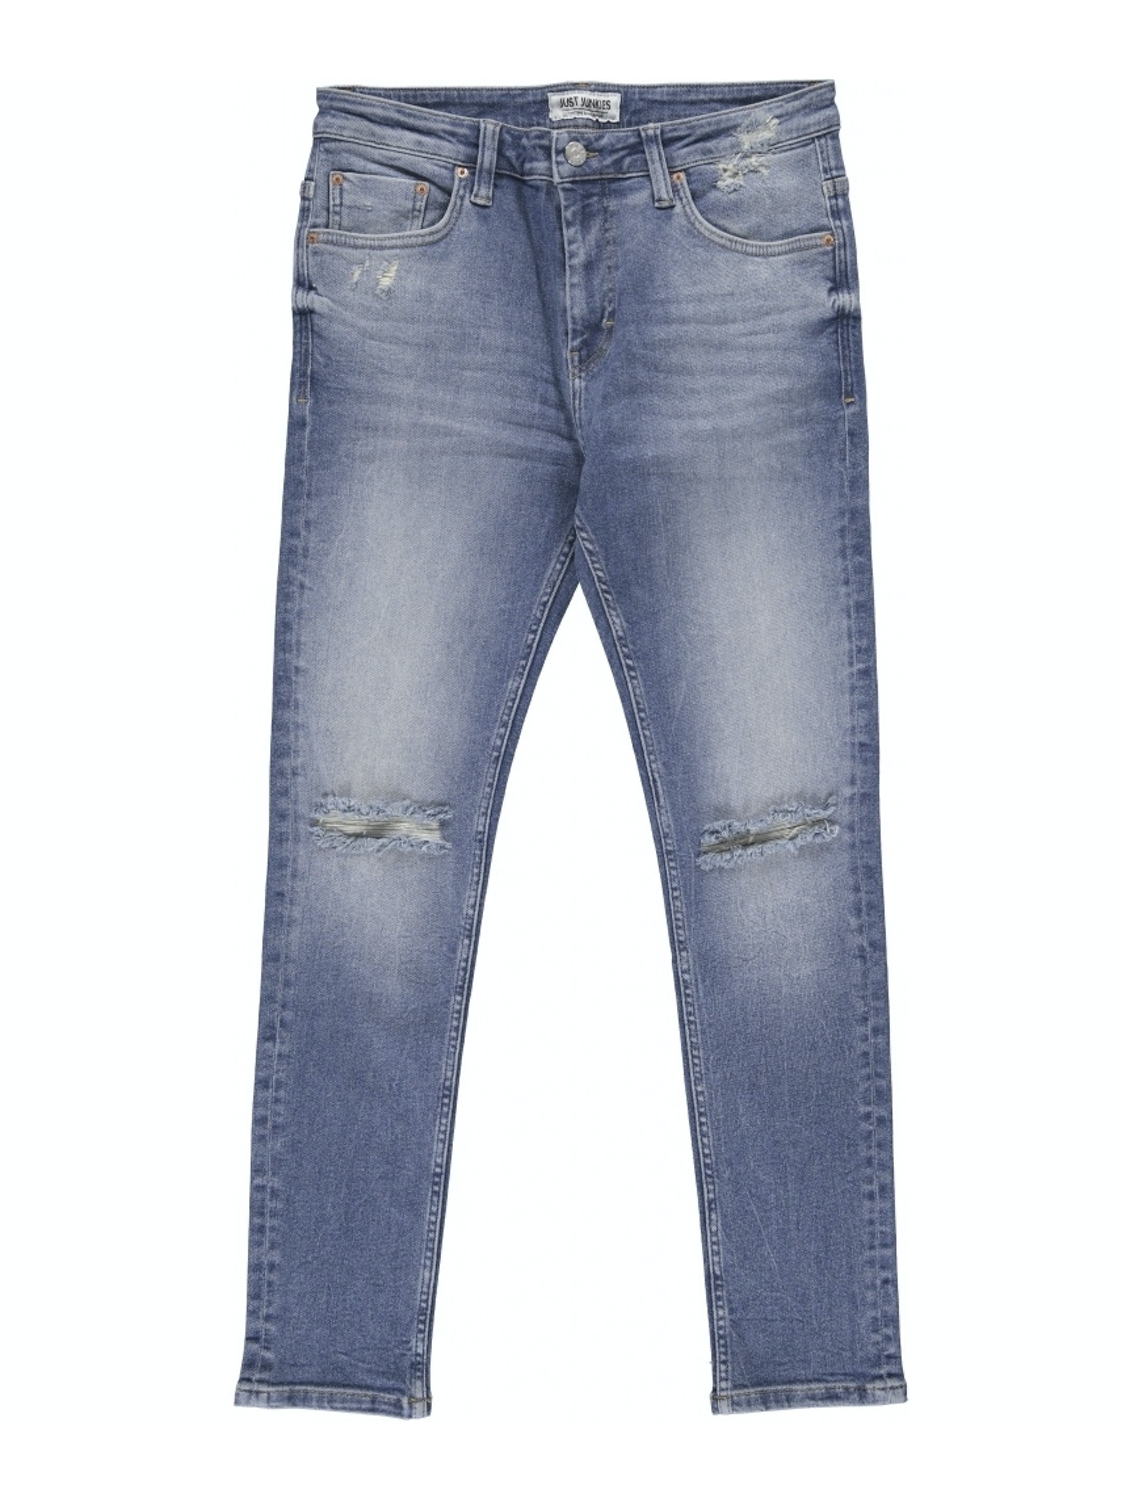 Just Junkies Max Emty Blue Jeans | GATE 36 Hobro